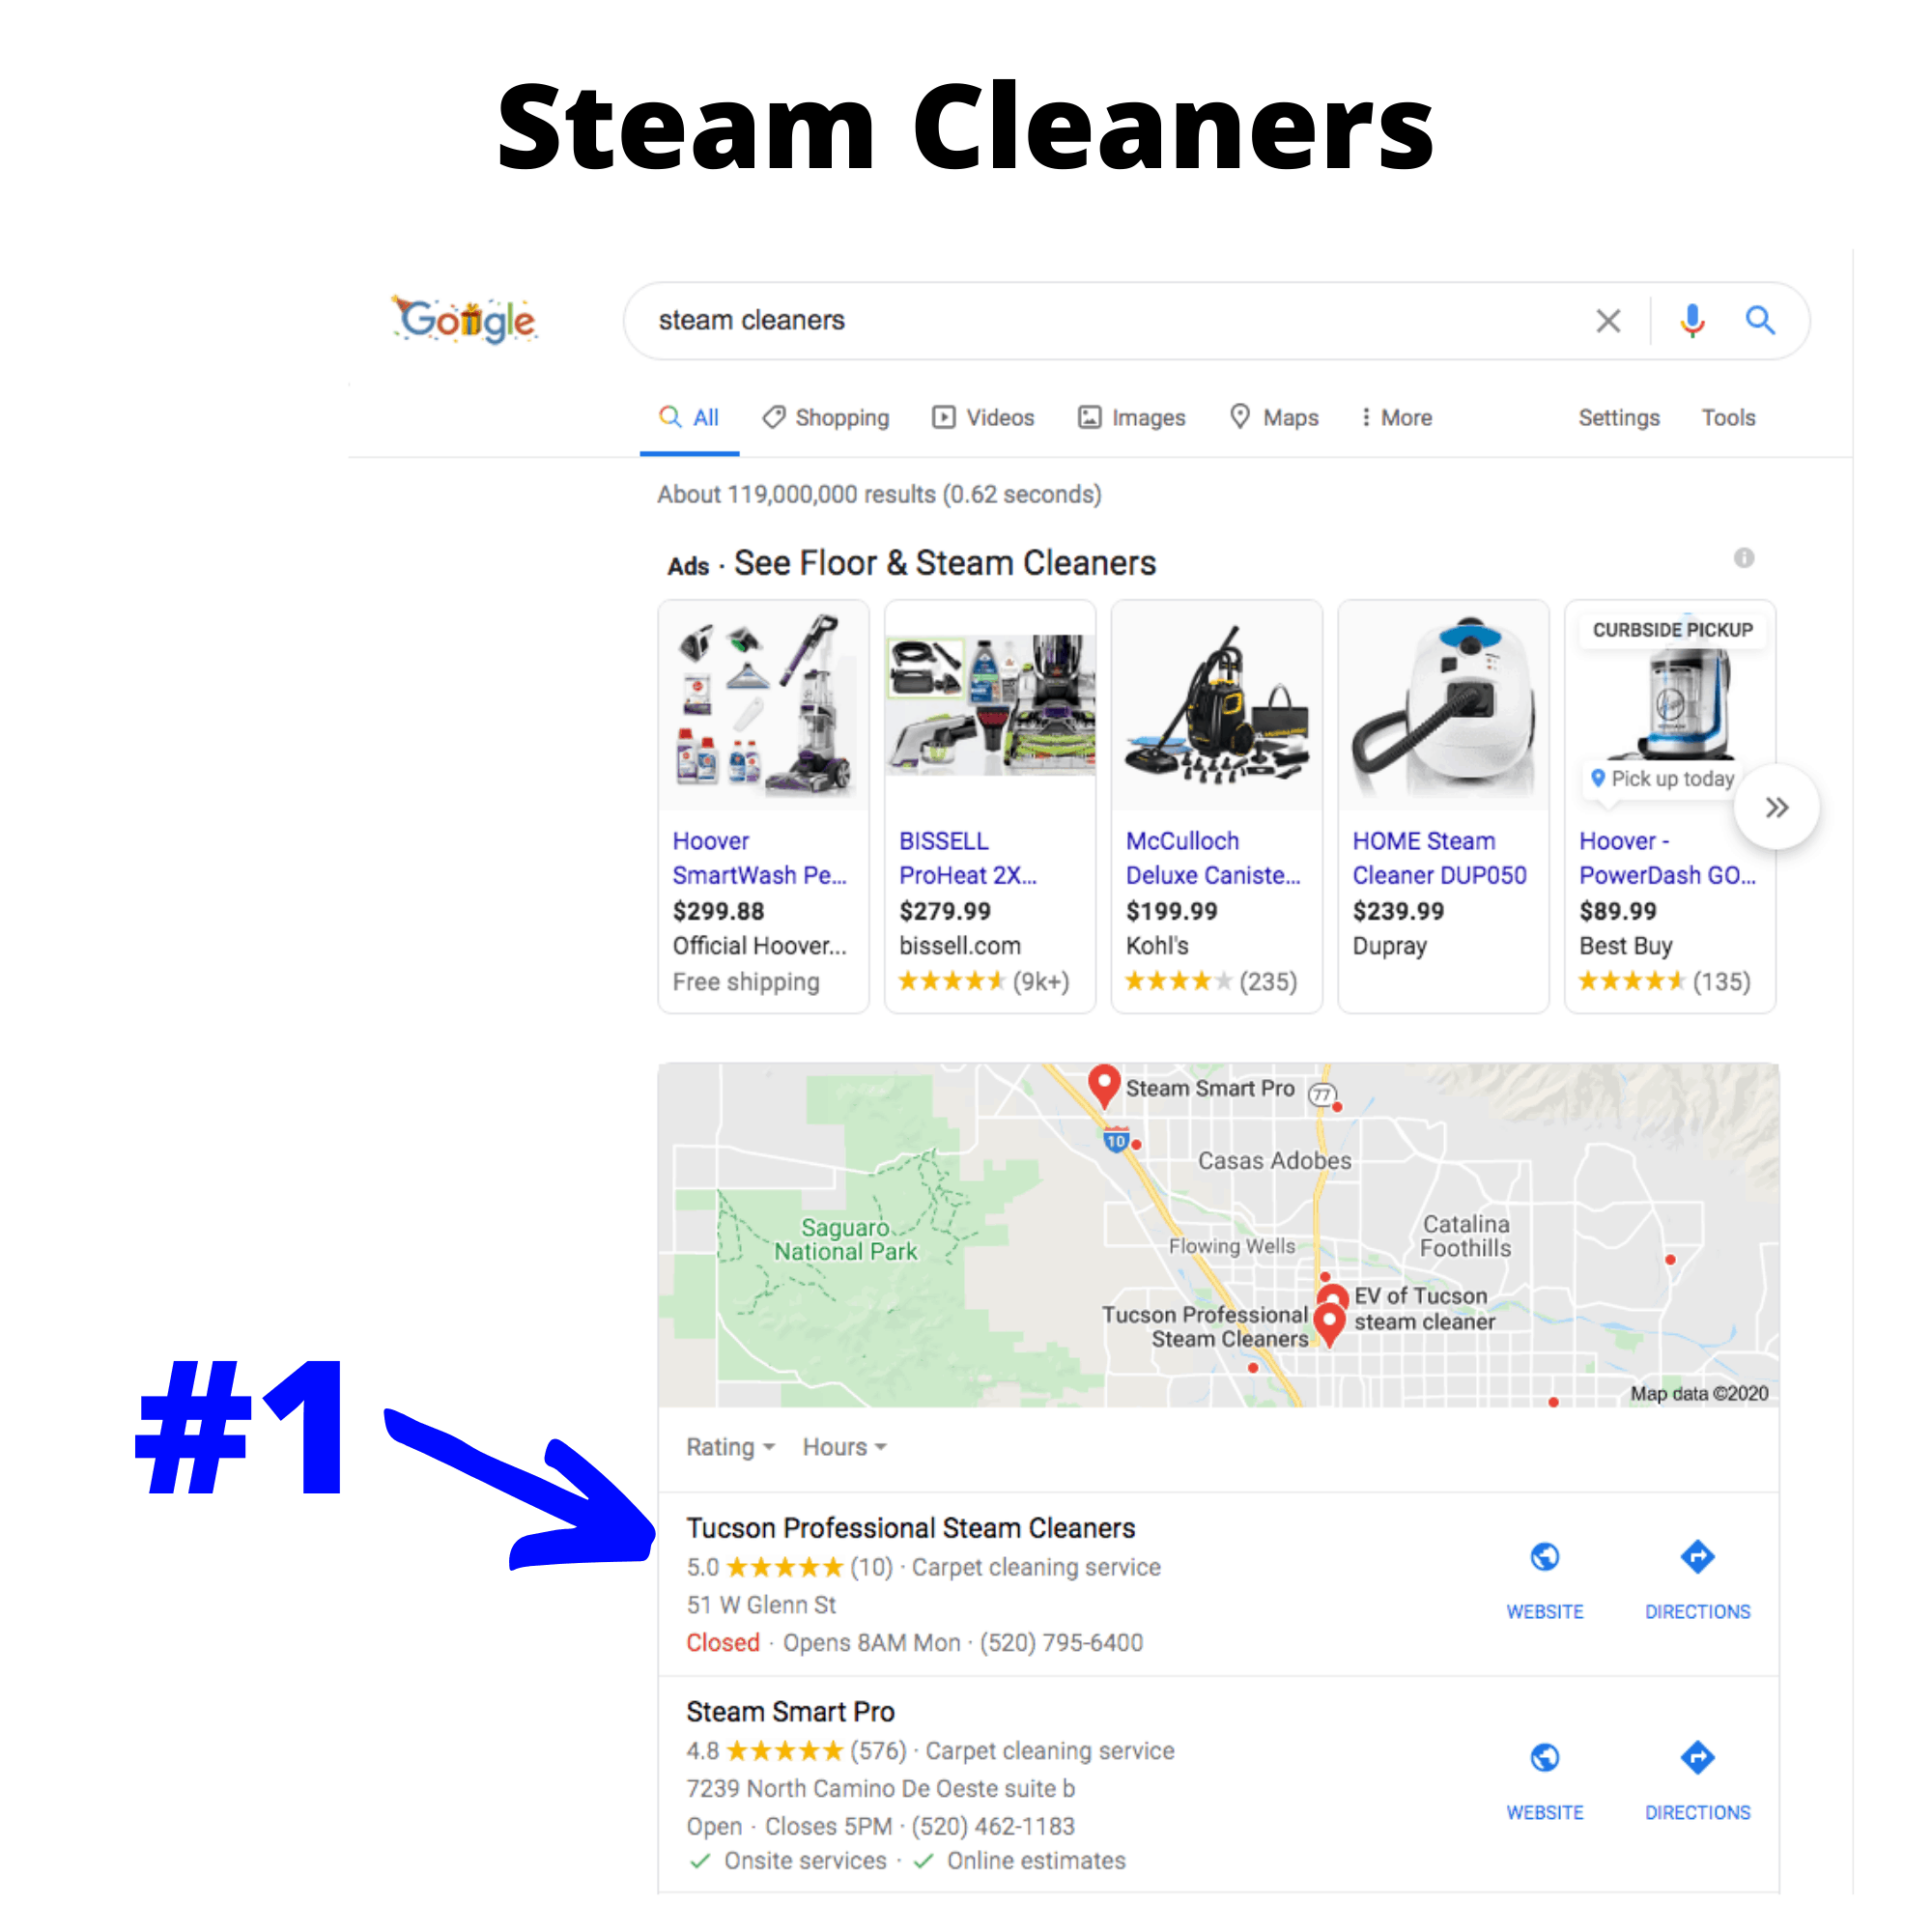 Steam Cleaners search results